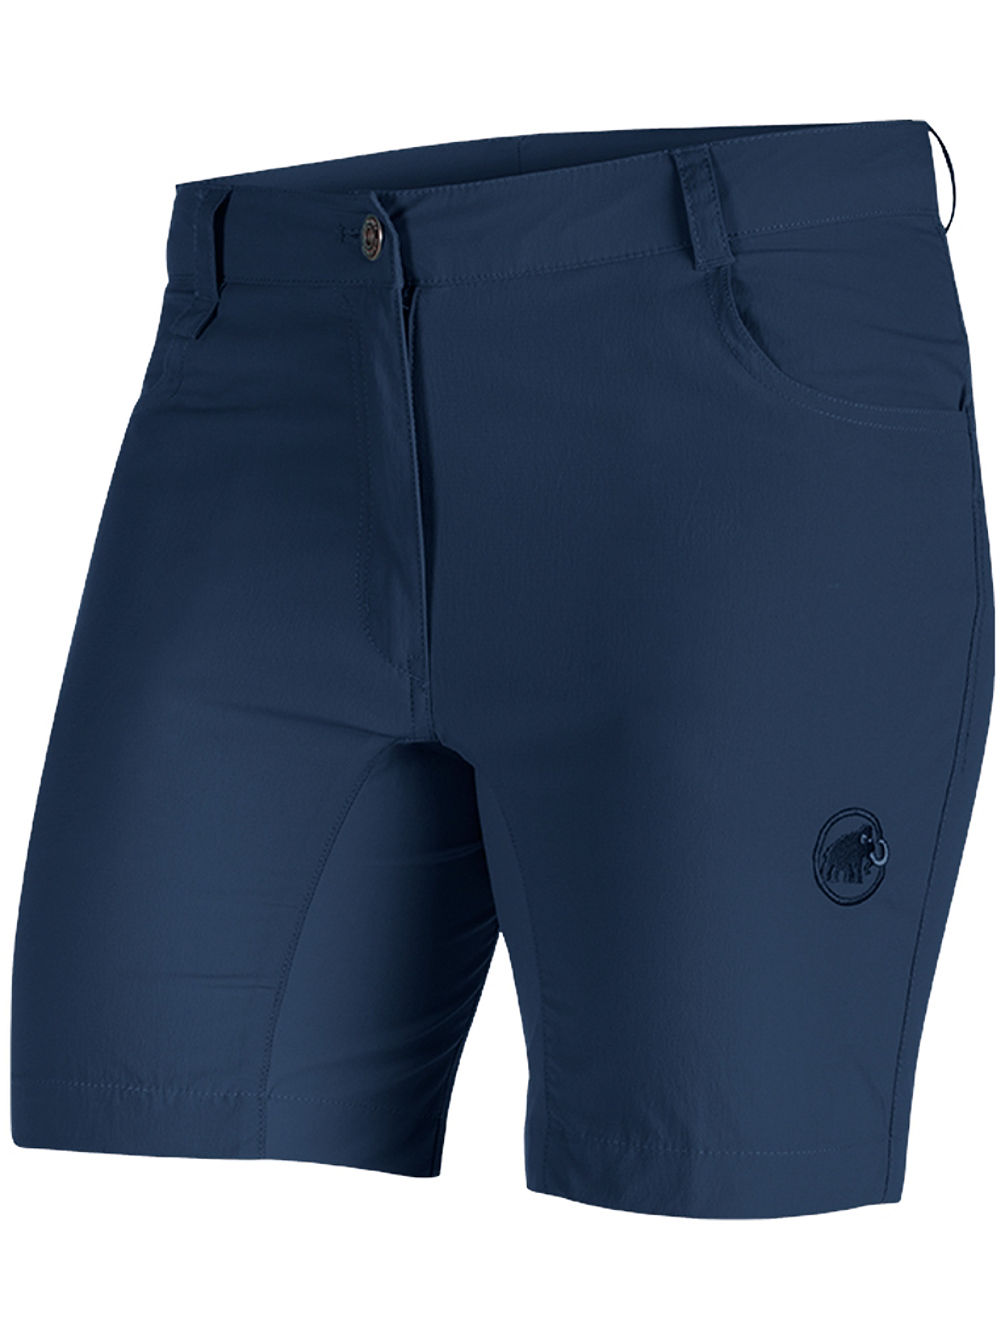 Runbold Light Short Outdoorhose